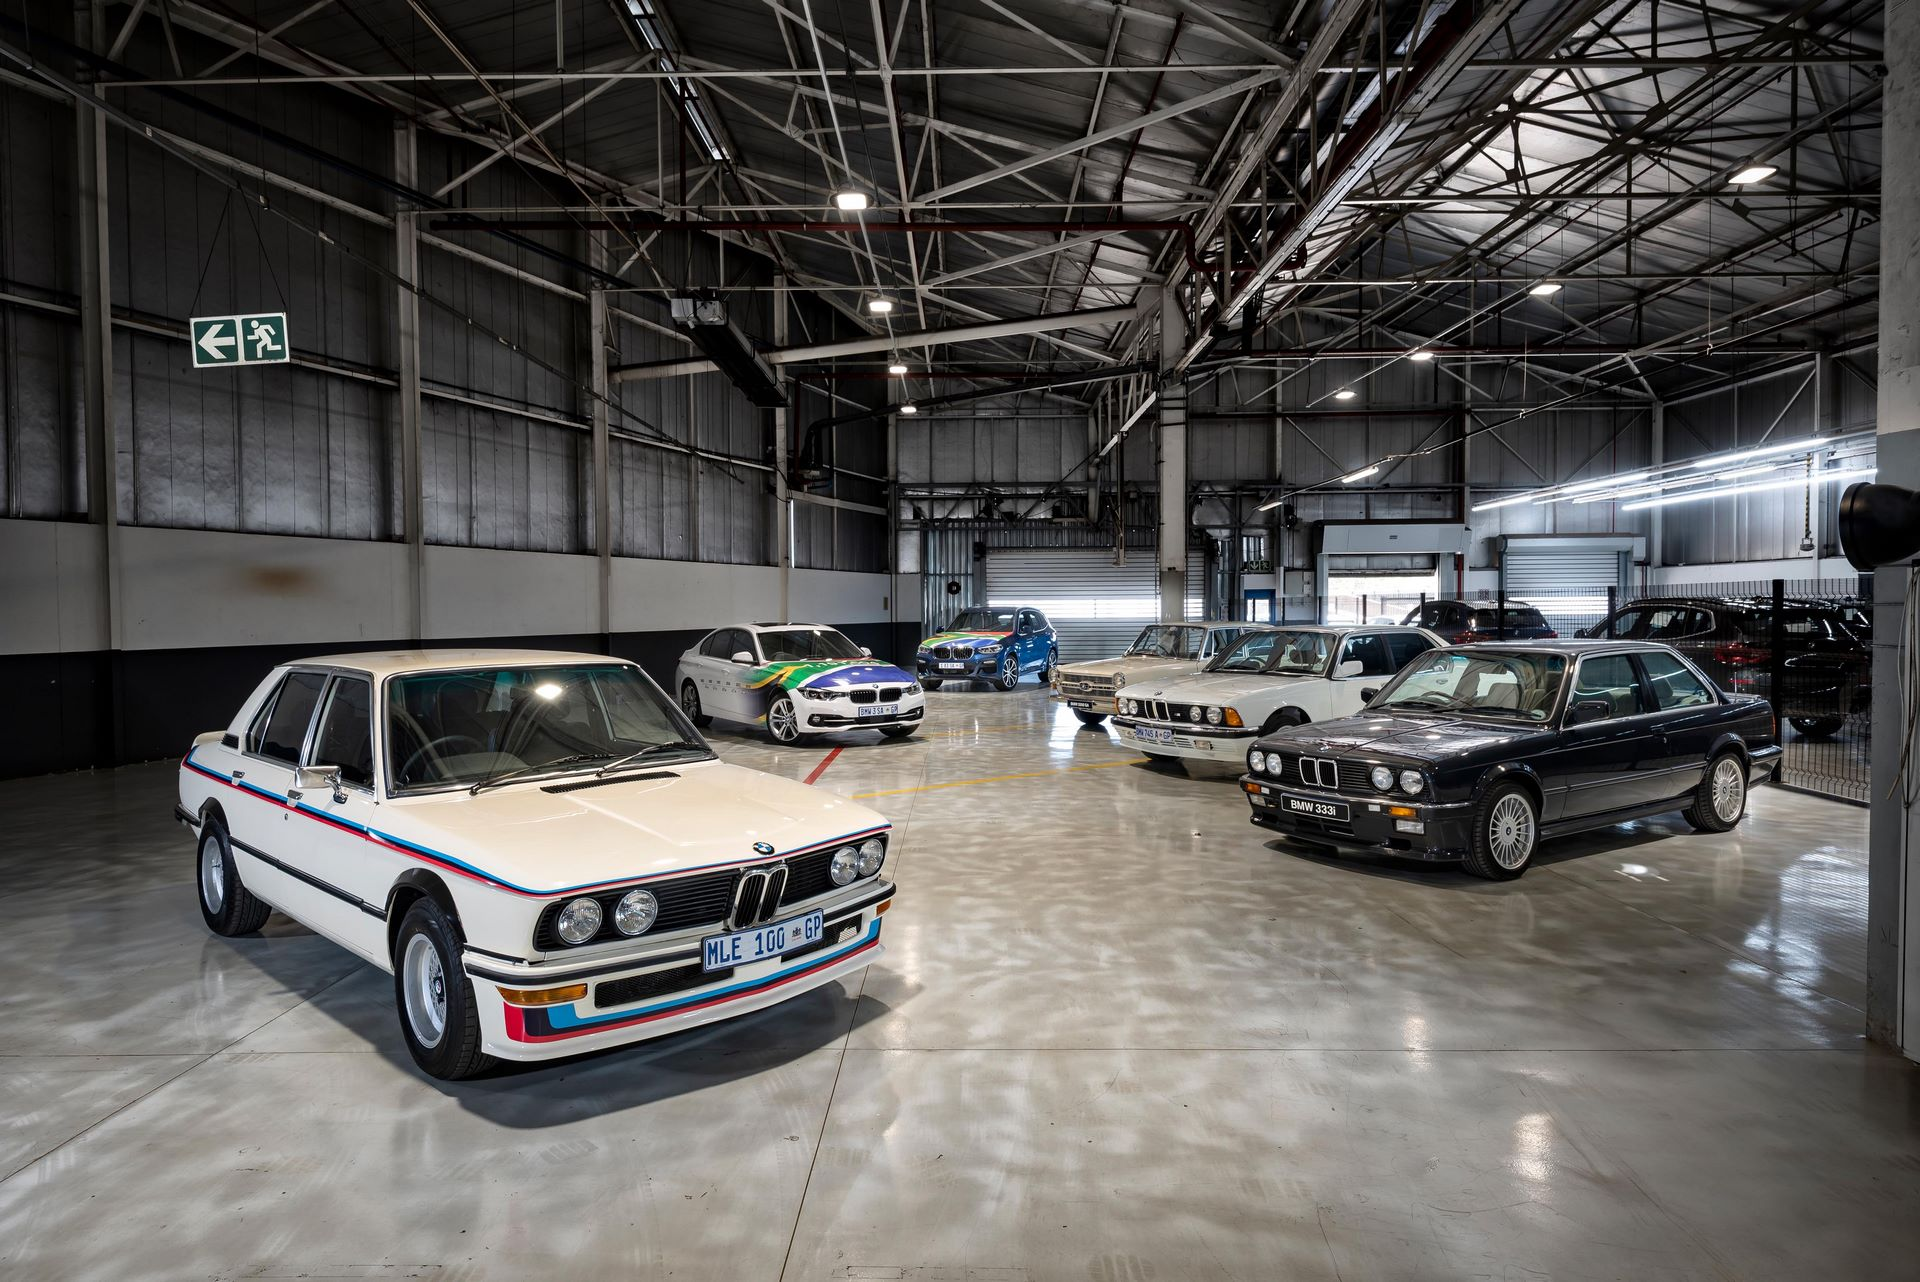 BMW-530-MLE-restoration-in-South-Africa-38